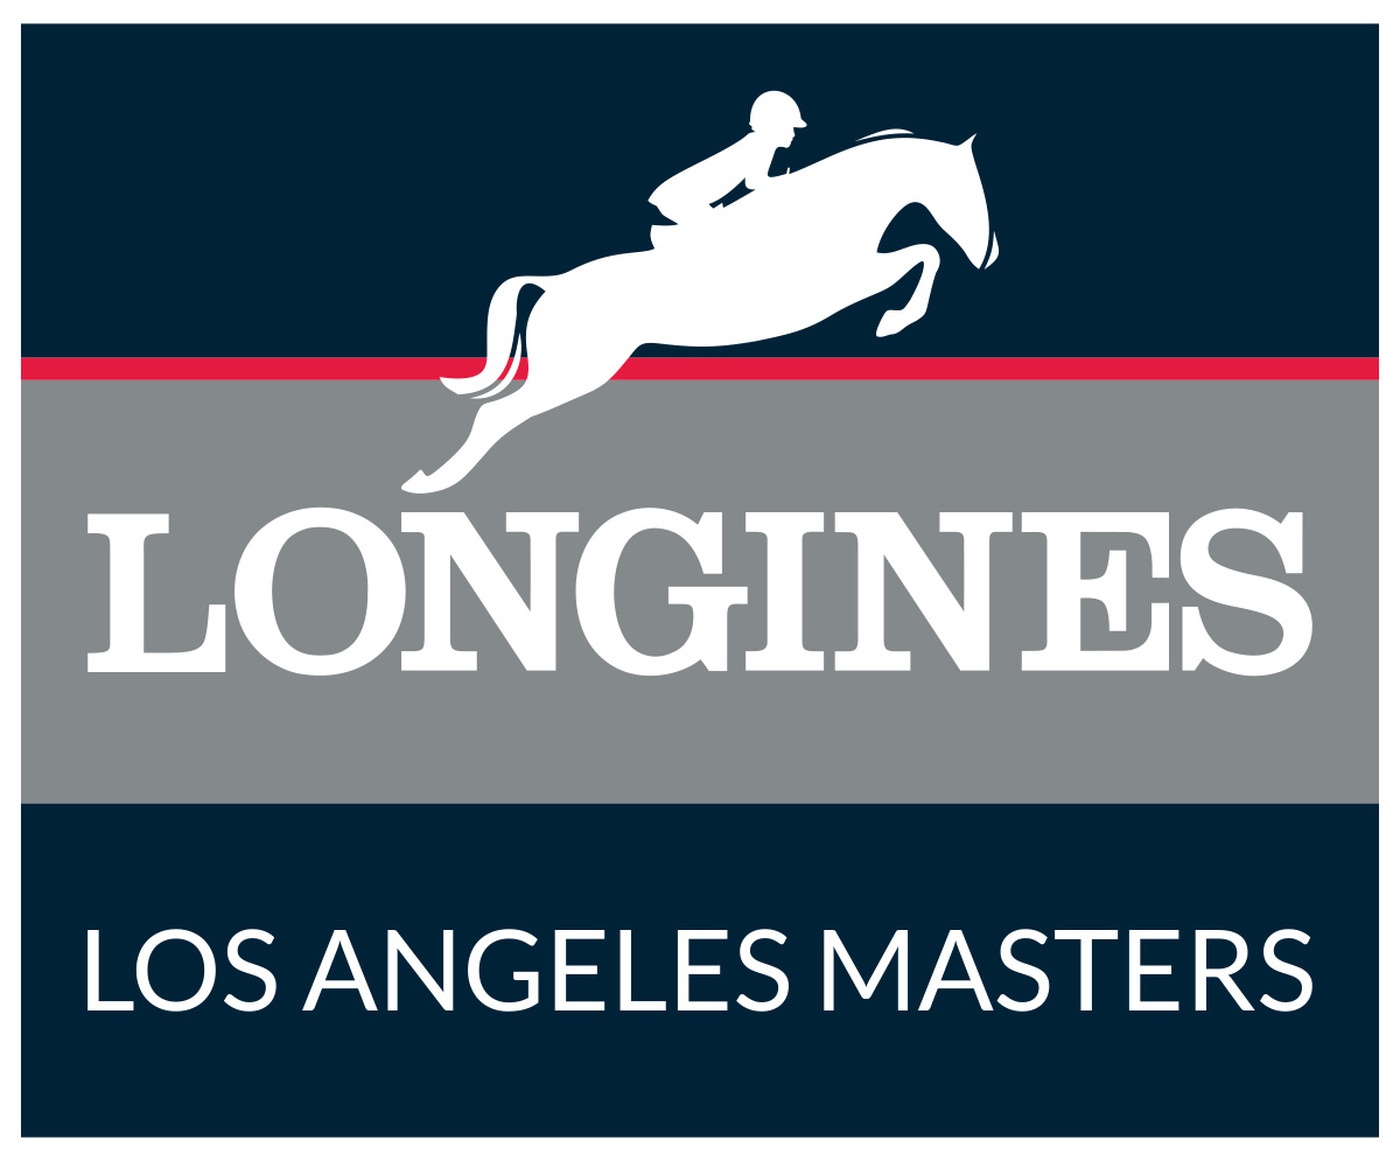 Longines Show Jumping Event: Longines is the Title Partner of the first annual Longines Los Angeles Masters 2